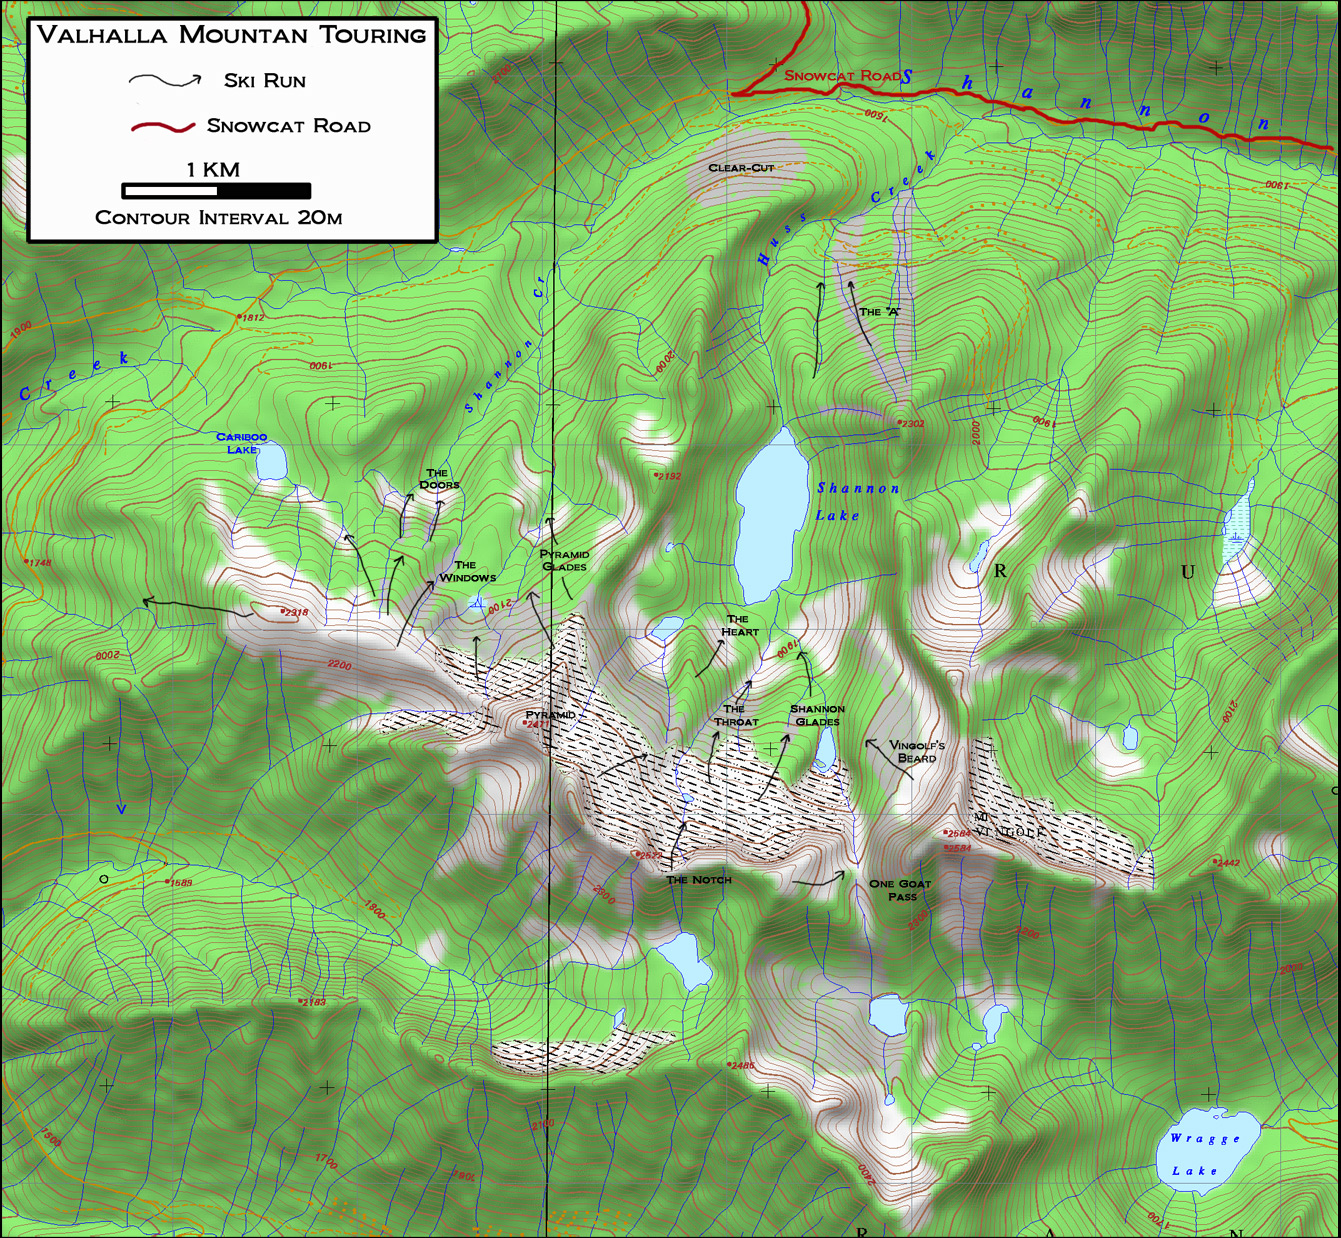 valhalla mountain range backcountry skiing touring map